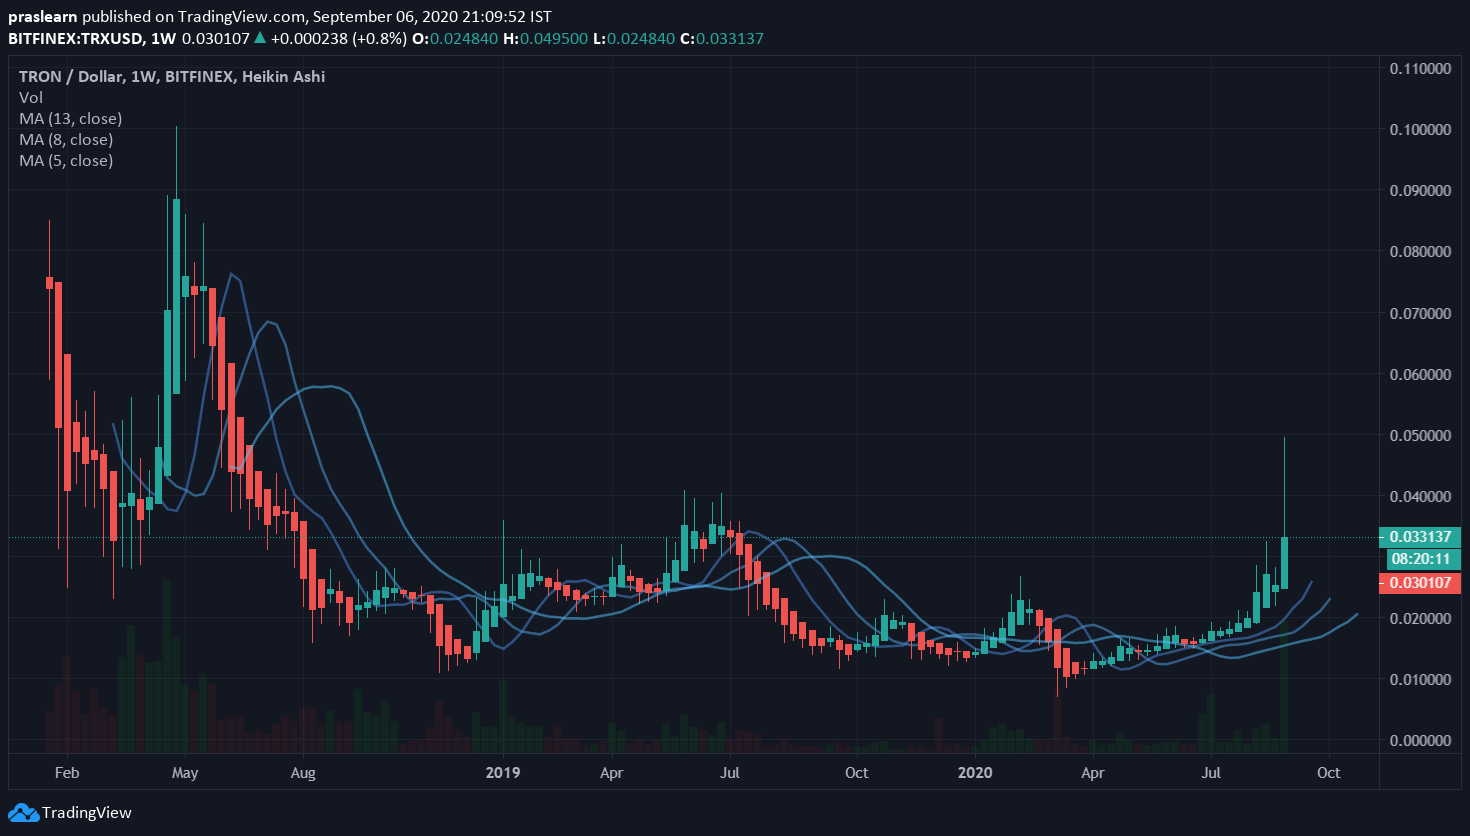 Top 5 Cryptocurrencies: TRON/USD Weekly Price: Tradingview